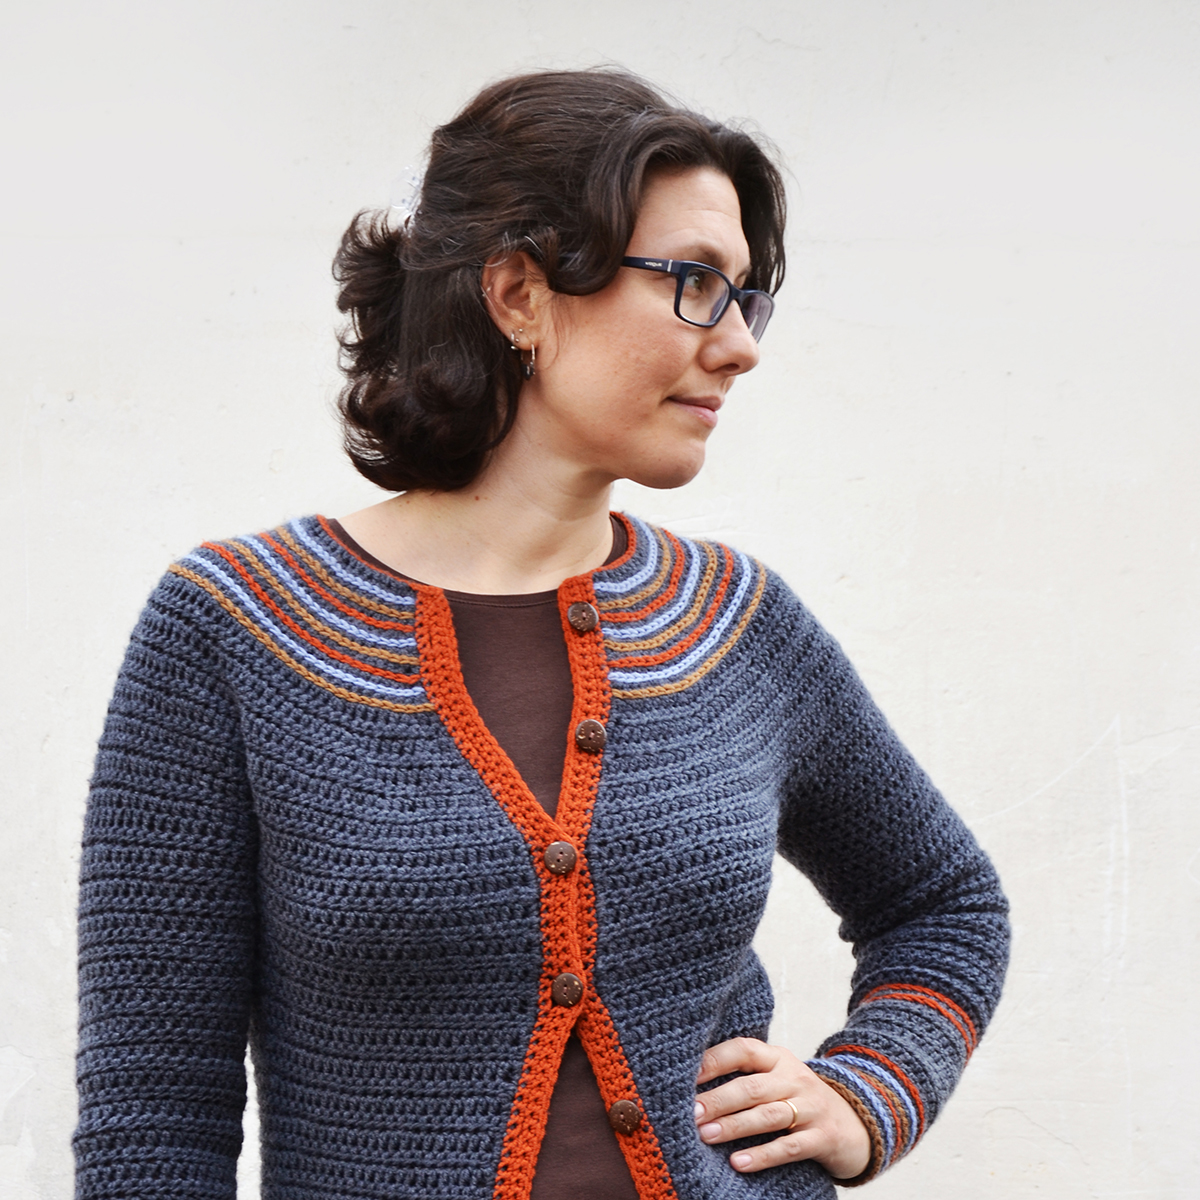 The Saturn Sweater: a crochet sweater with colorful embroidered rings. A pattern review by www.cucicucicoo.com